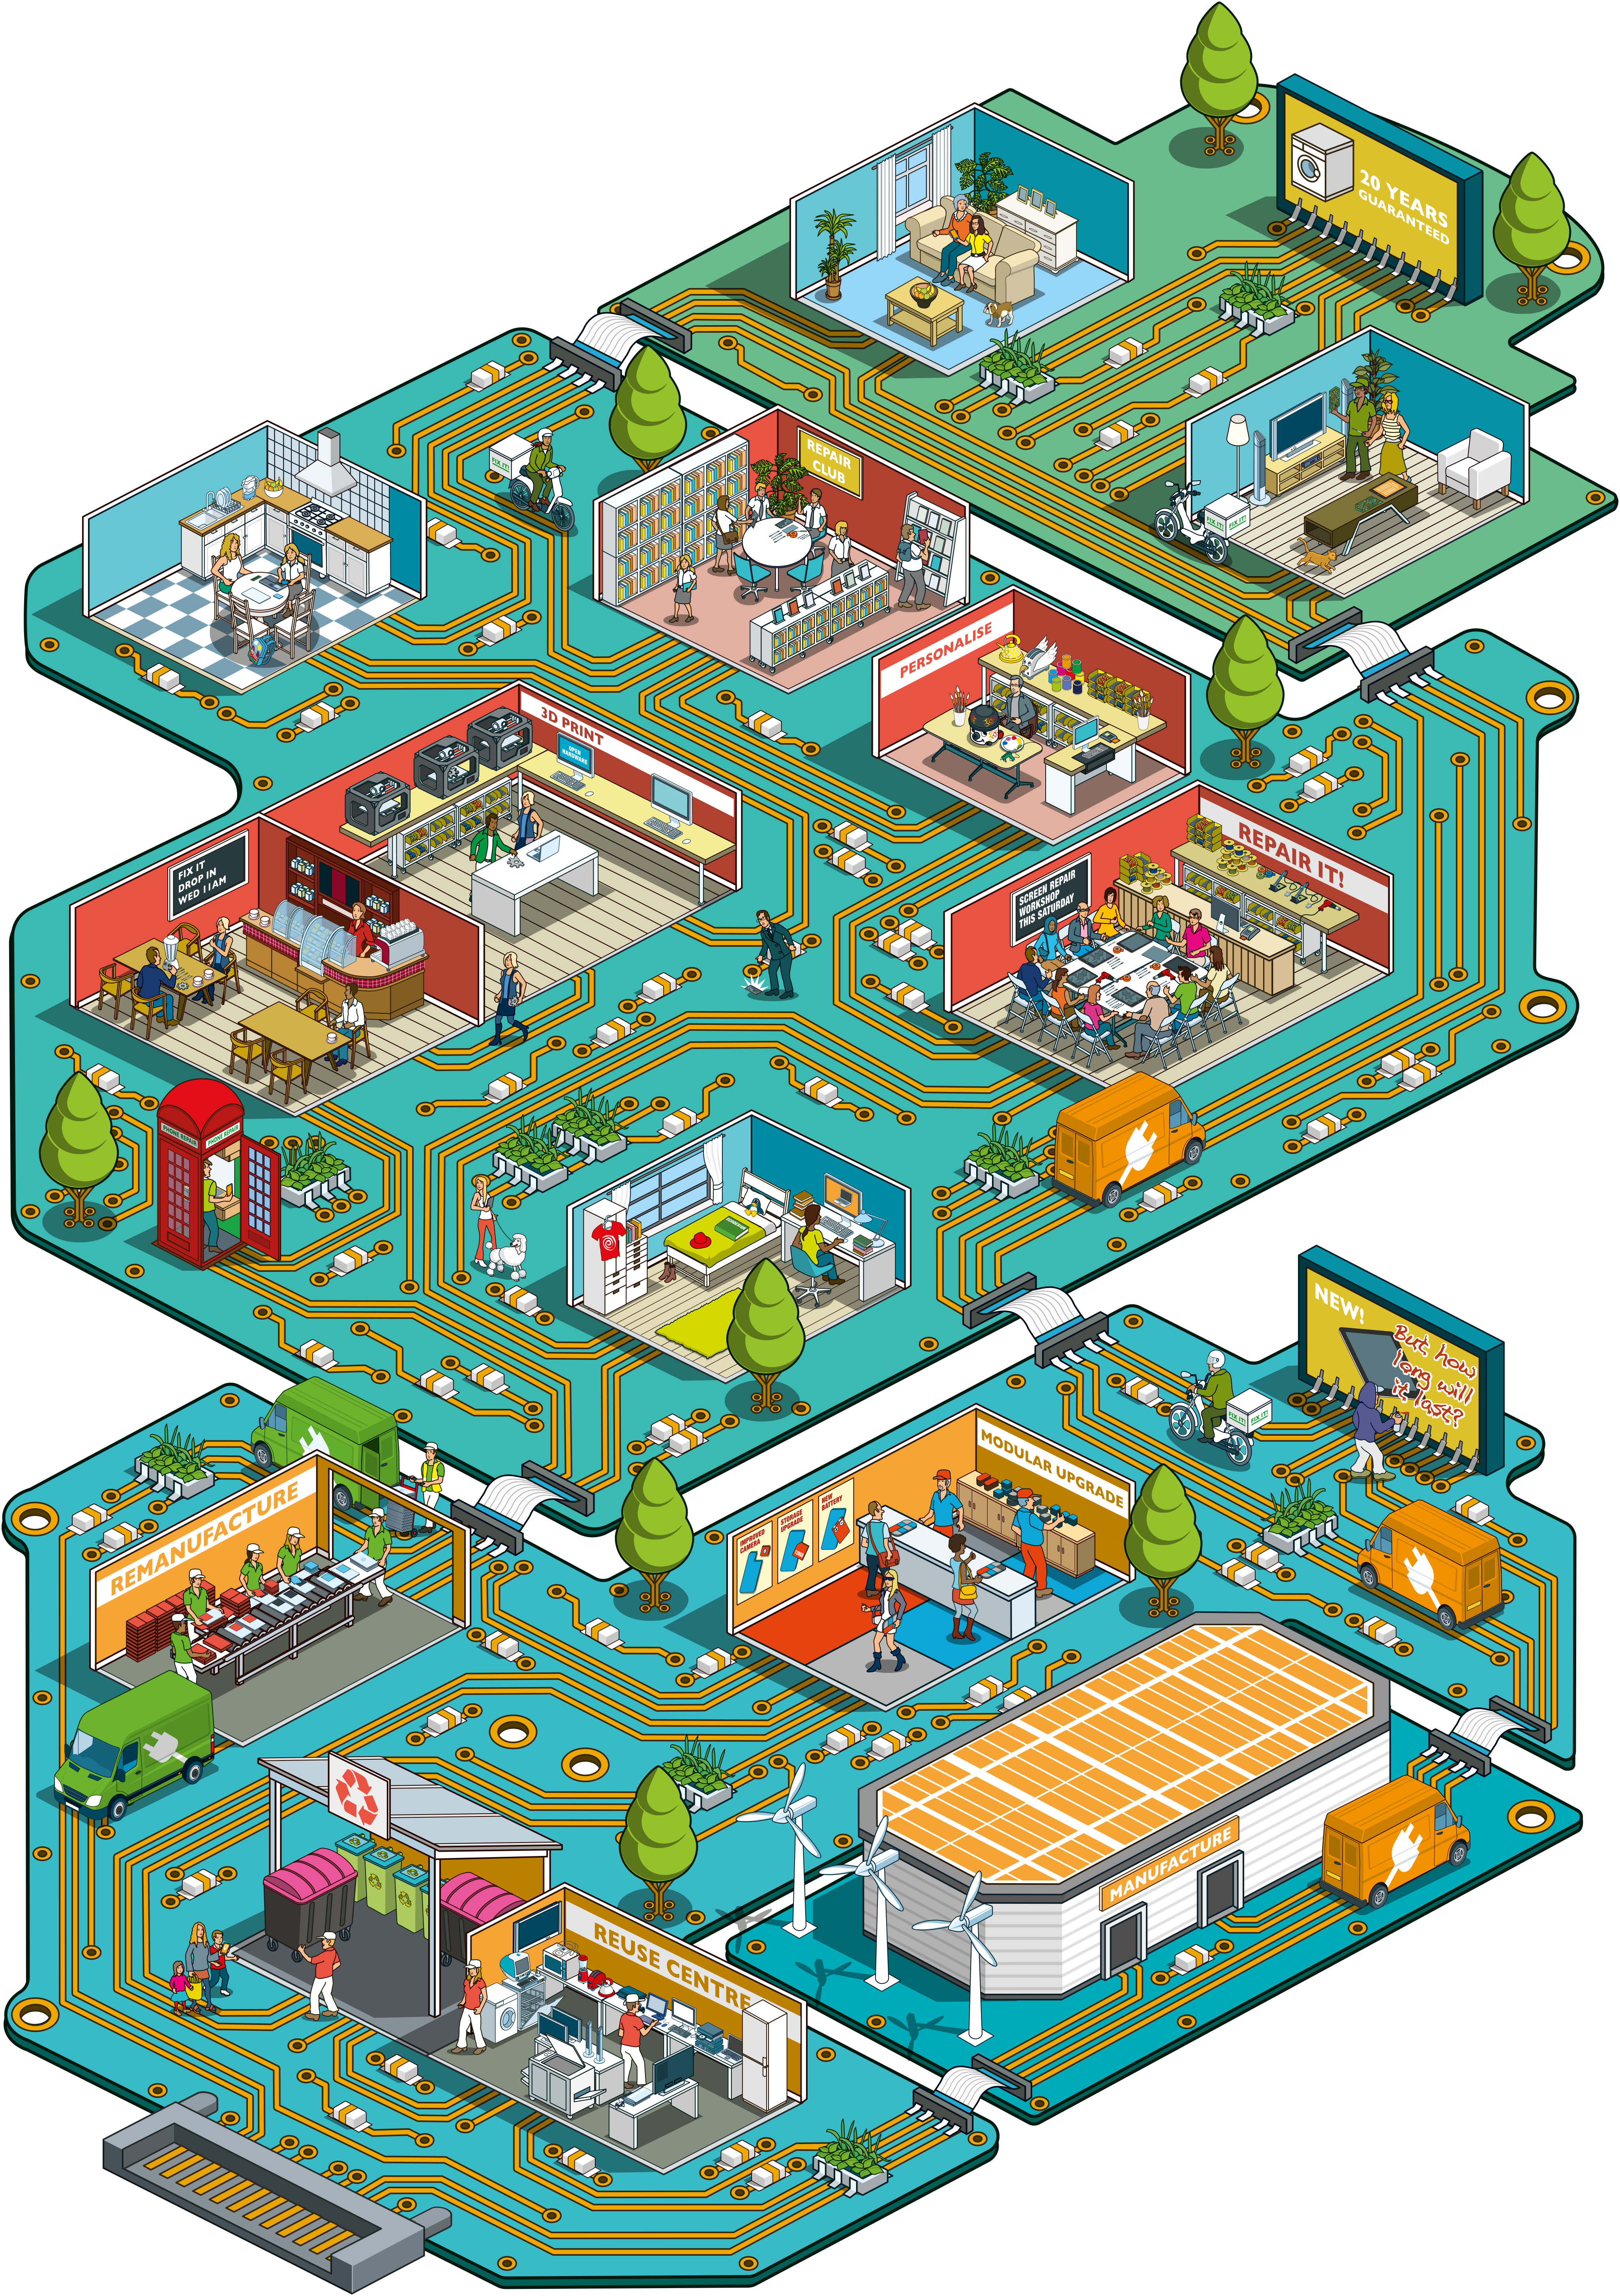 Colourful isometric illustration of various futures related to electronics on a figurative 'circuit board'